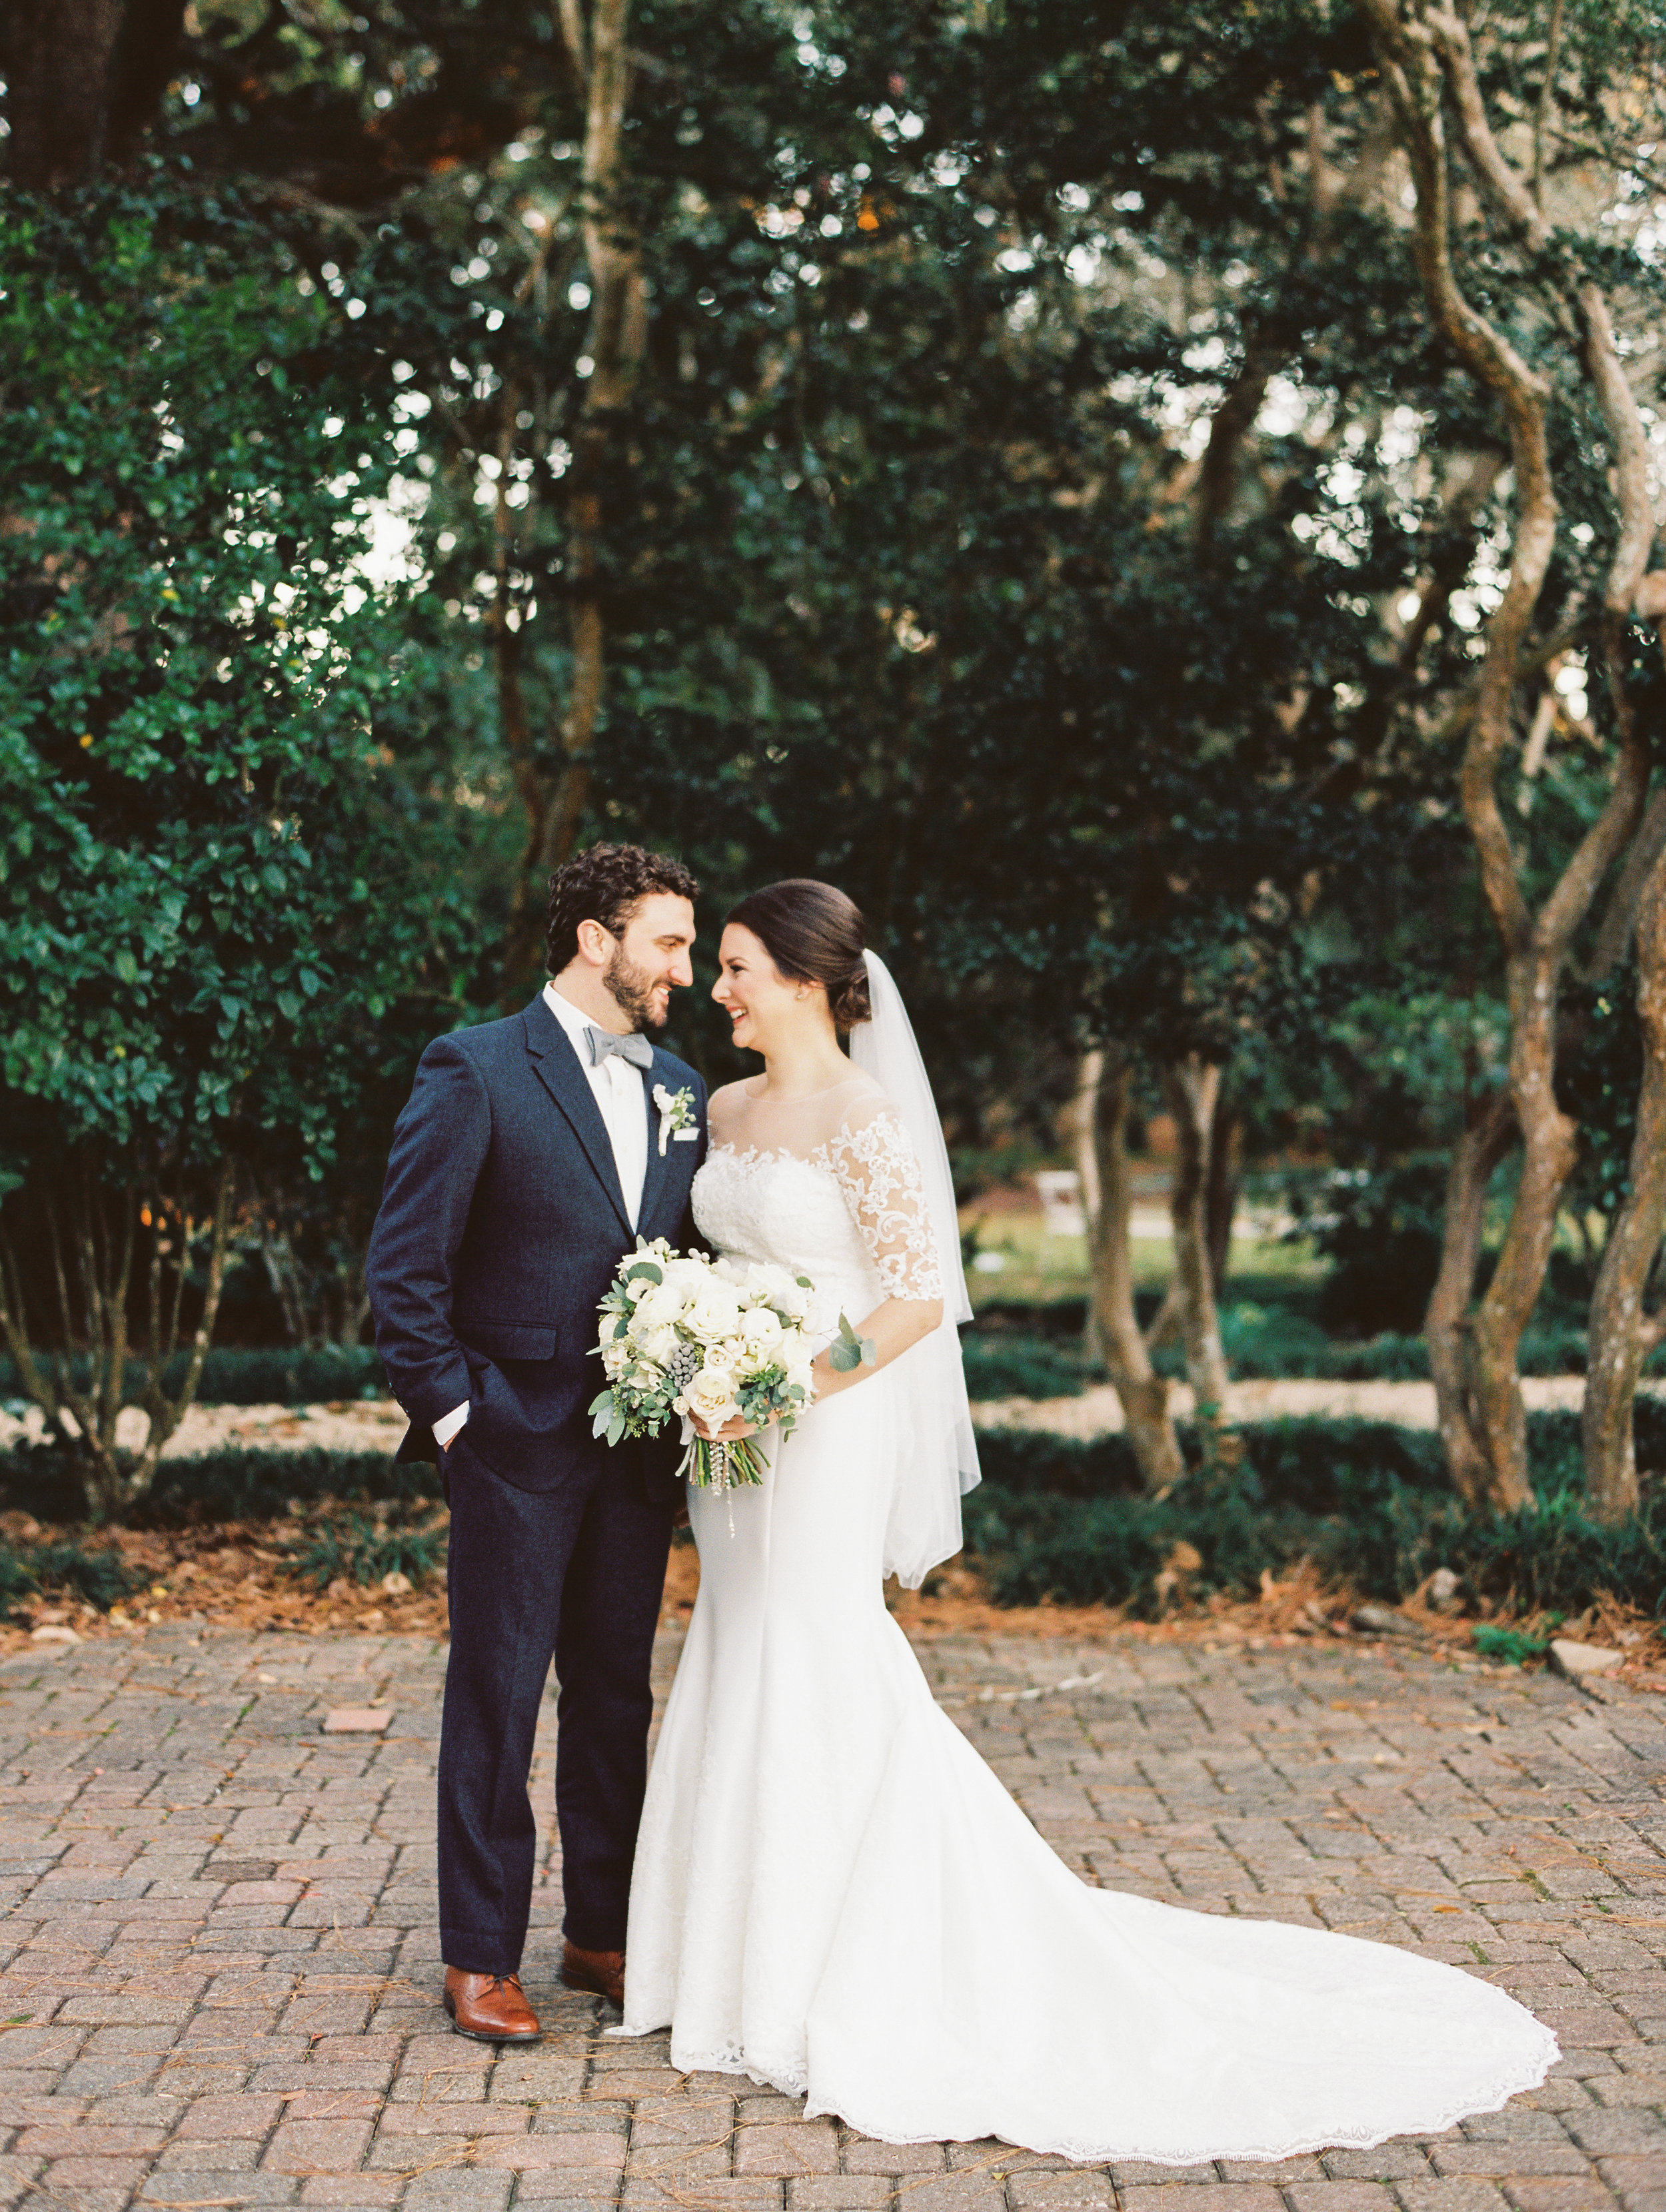 Southern Fete, Southern Wedding, Bride and Groom Moment, Sarah Beth Photography, Petals and Pots